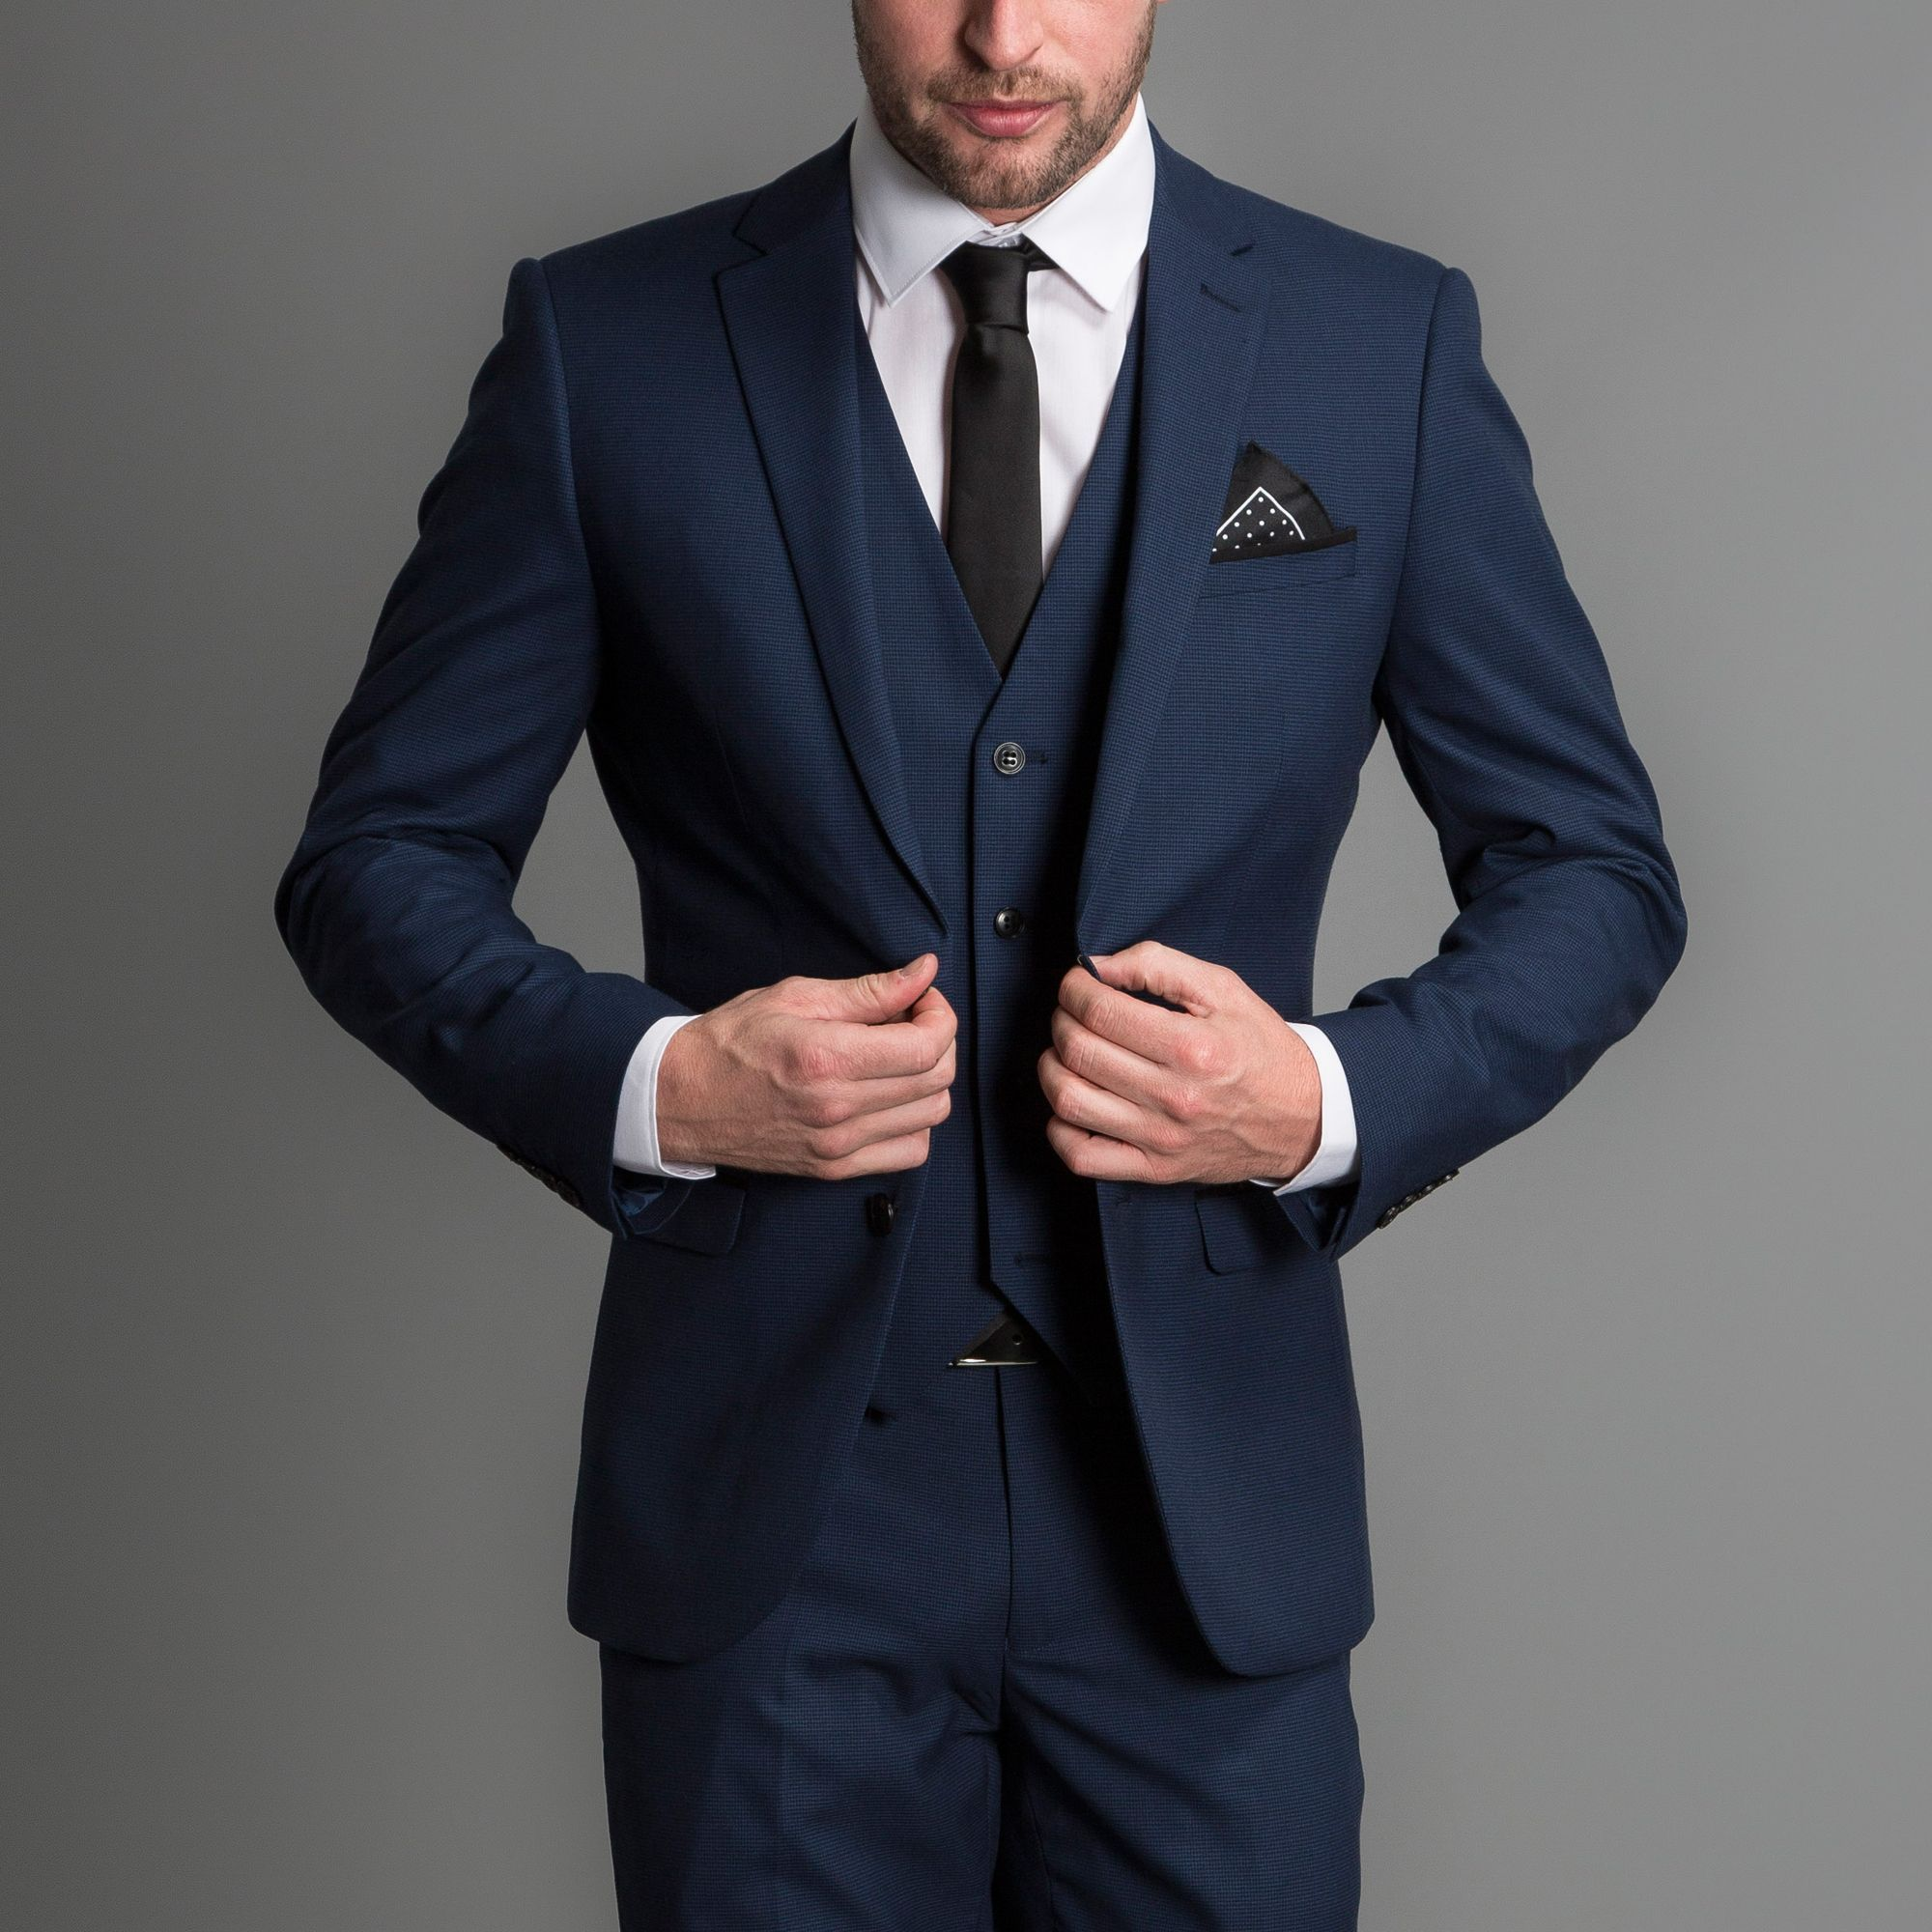 5 Tips For The Fashionless Man | Suits, Blue weddings and Black ...